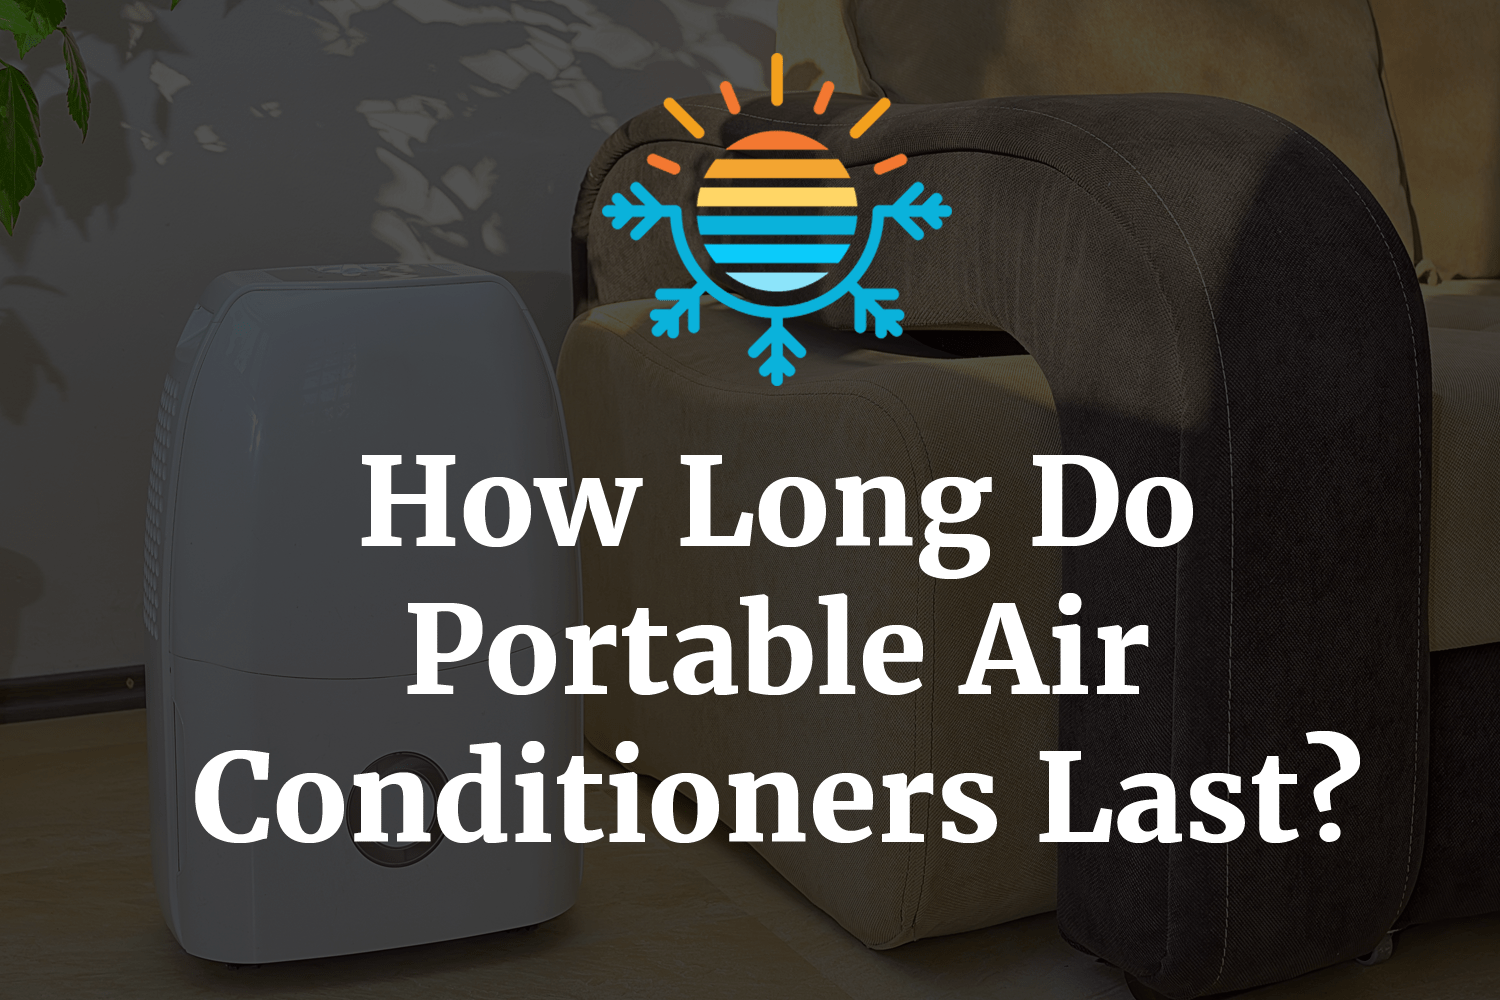 How Long Do Portable Air Conditioners Last